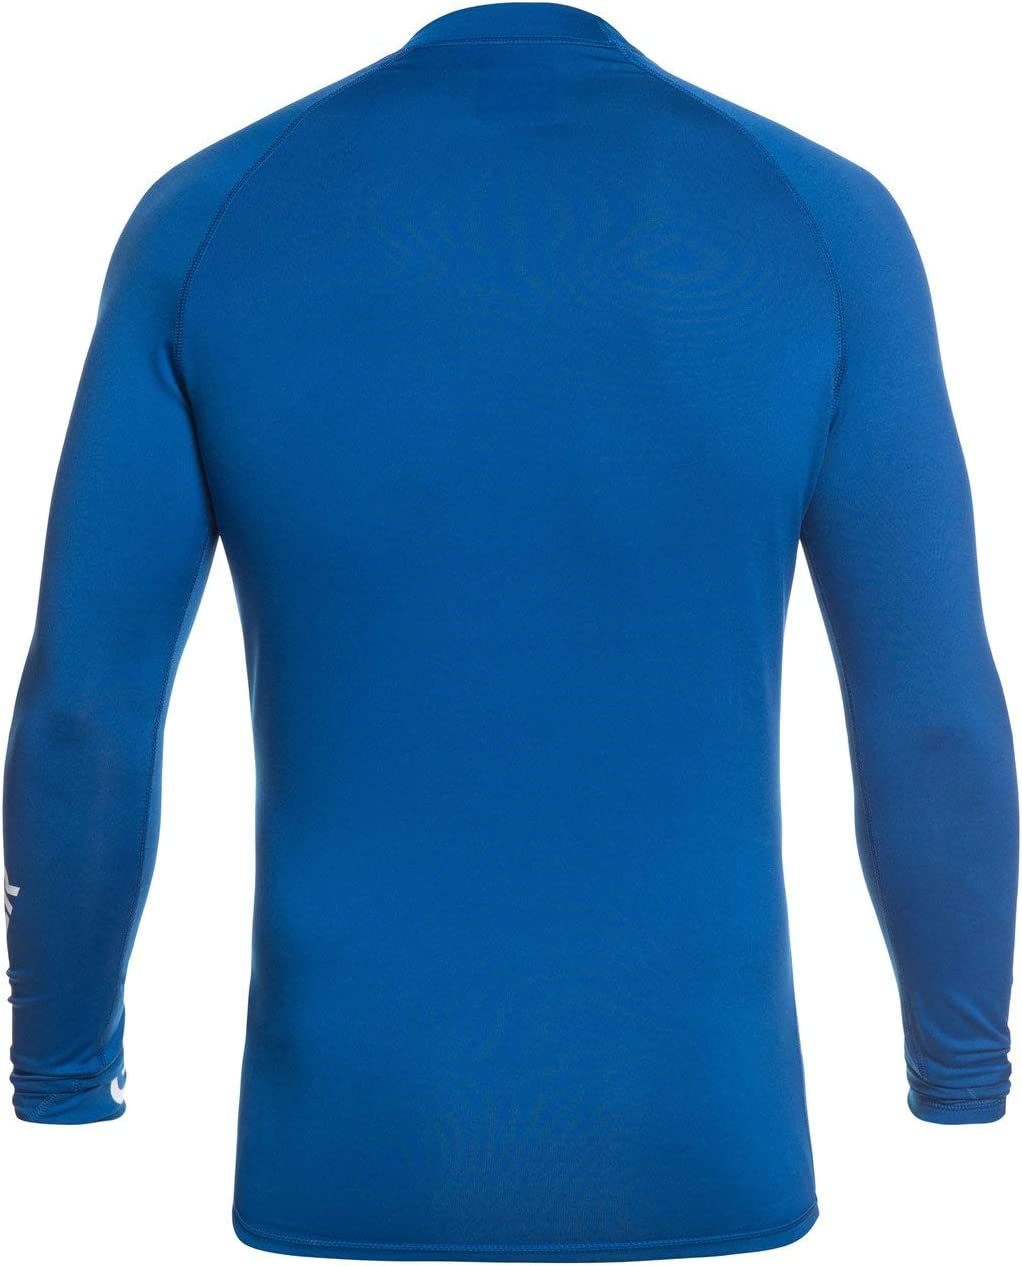 Quiksilver Eqywr03137/_s Surf tee Hombre